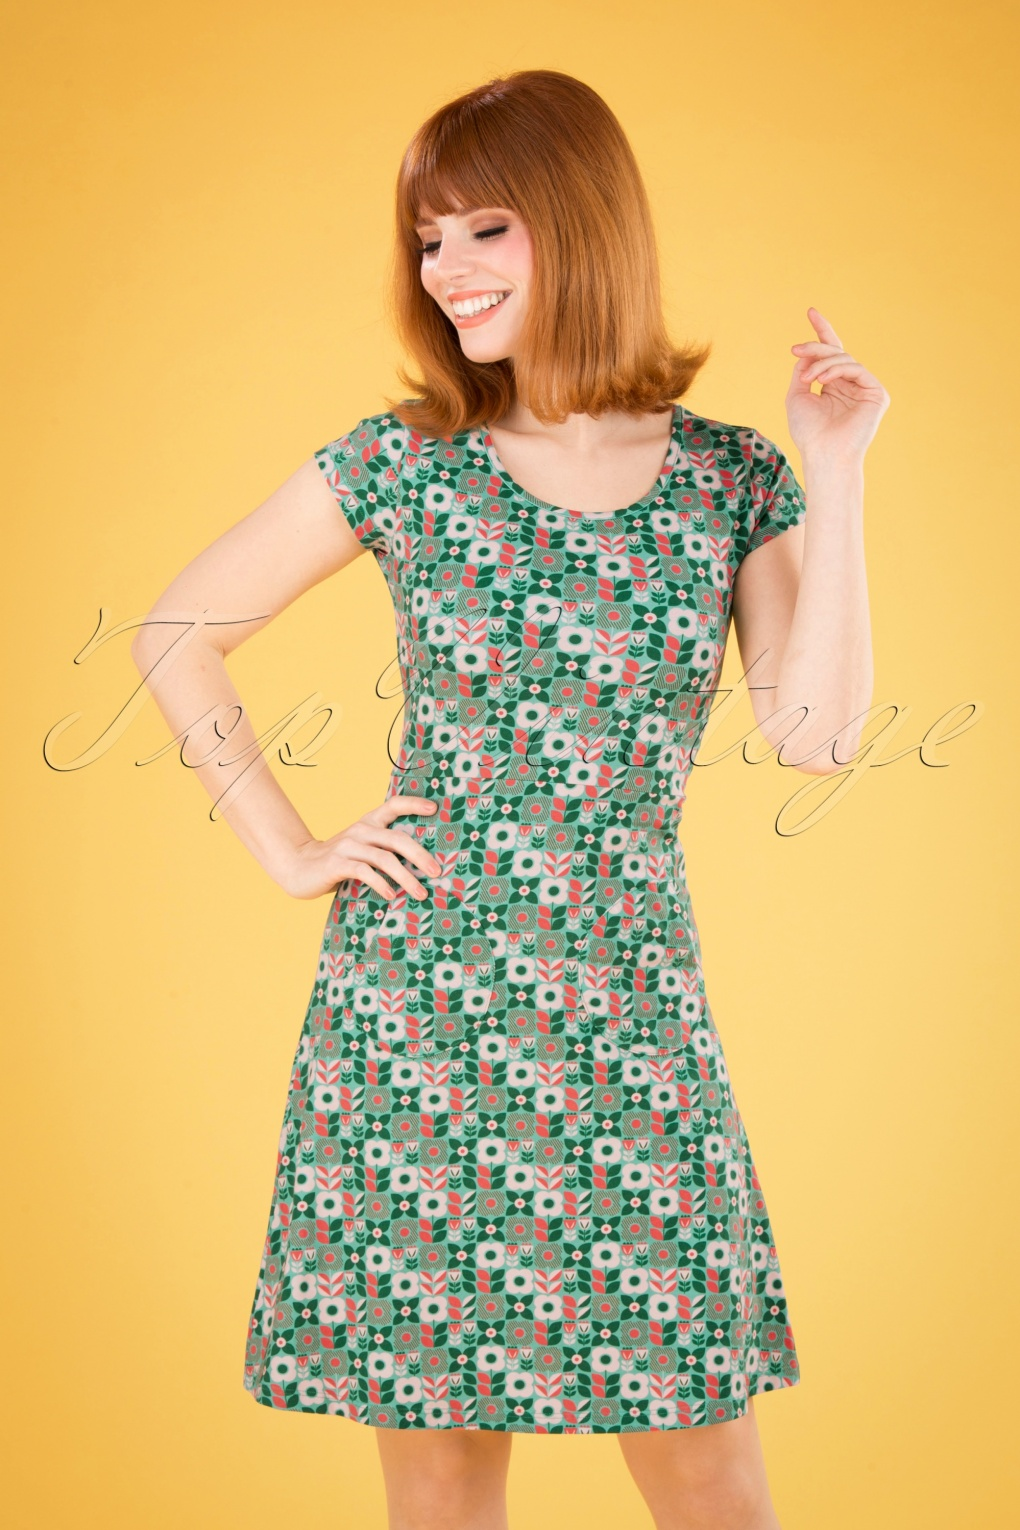 60s Dresses | 1960s Dresses Mod, Mini, Hippie 60s Asta Vindsnurra Dress in Green and Cream £78.14 AT vintagedancer.com